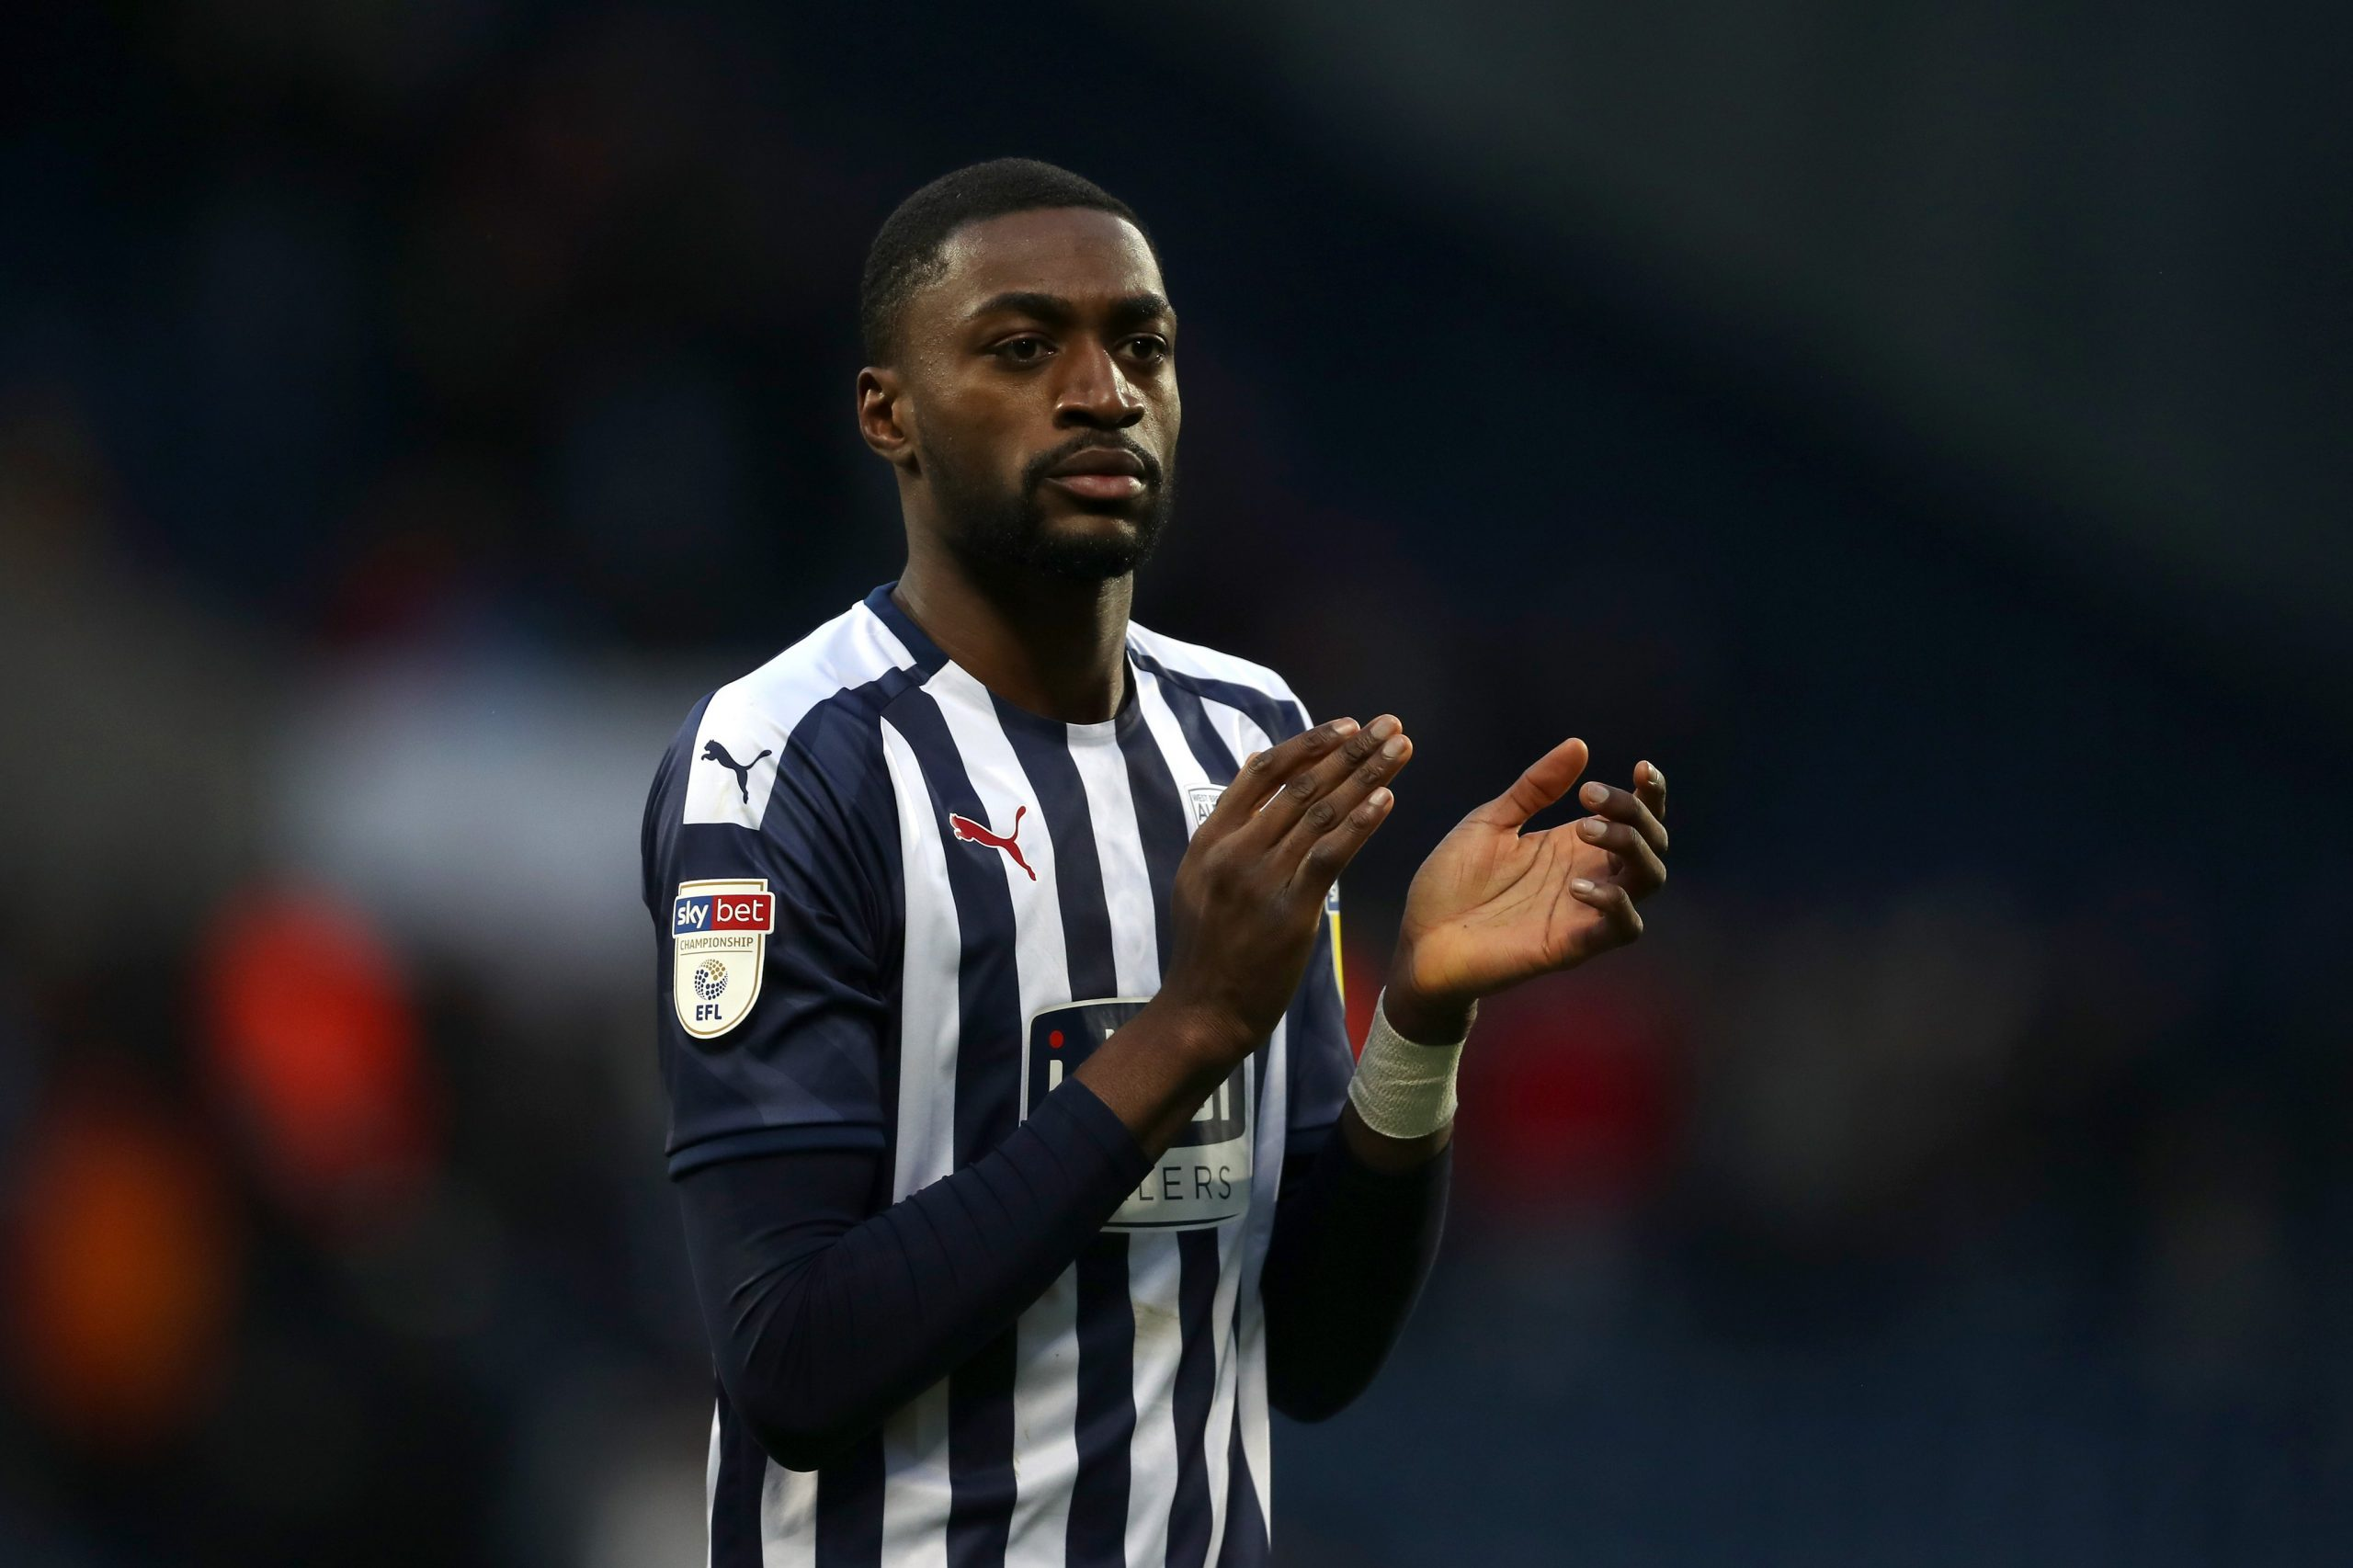 Bilic: Ajayi's Pace Big Asset For West Brom